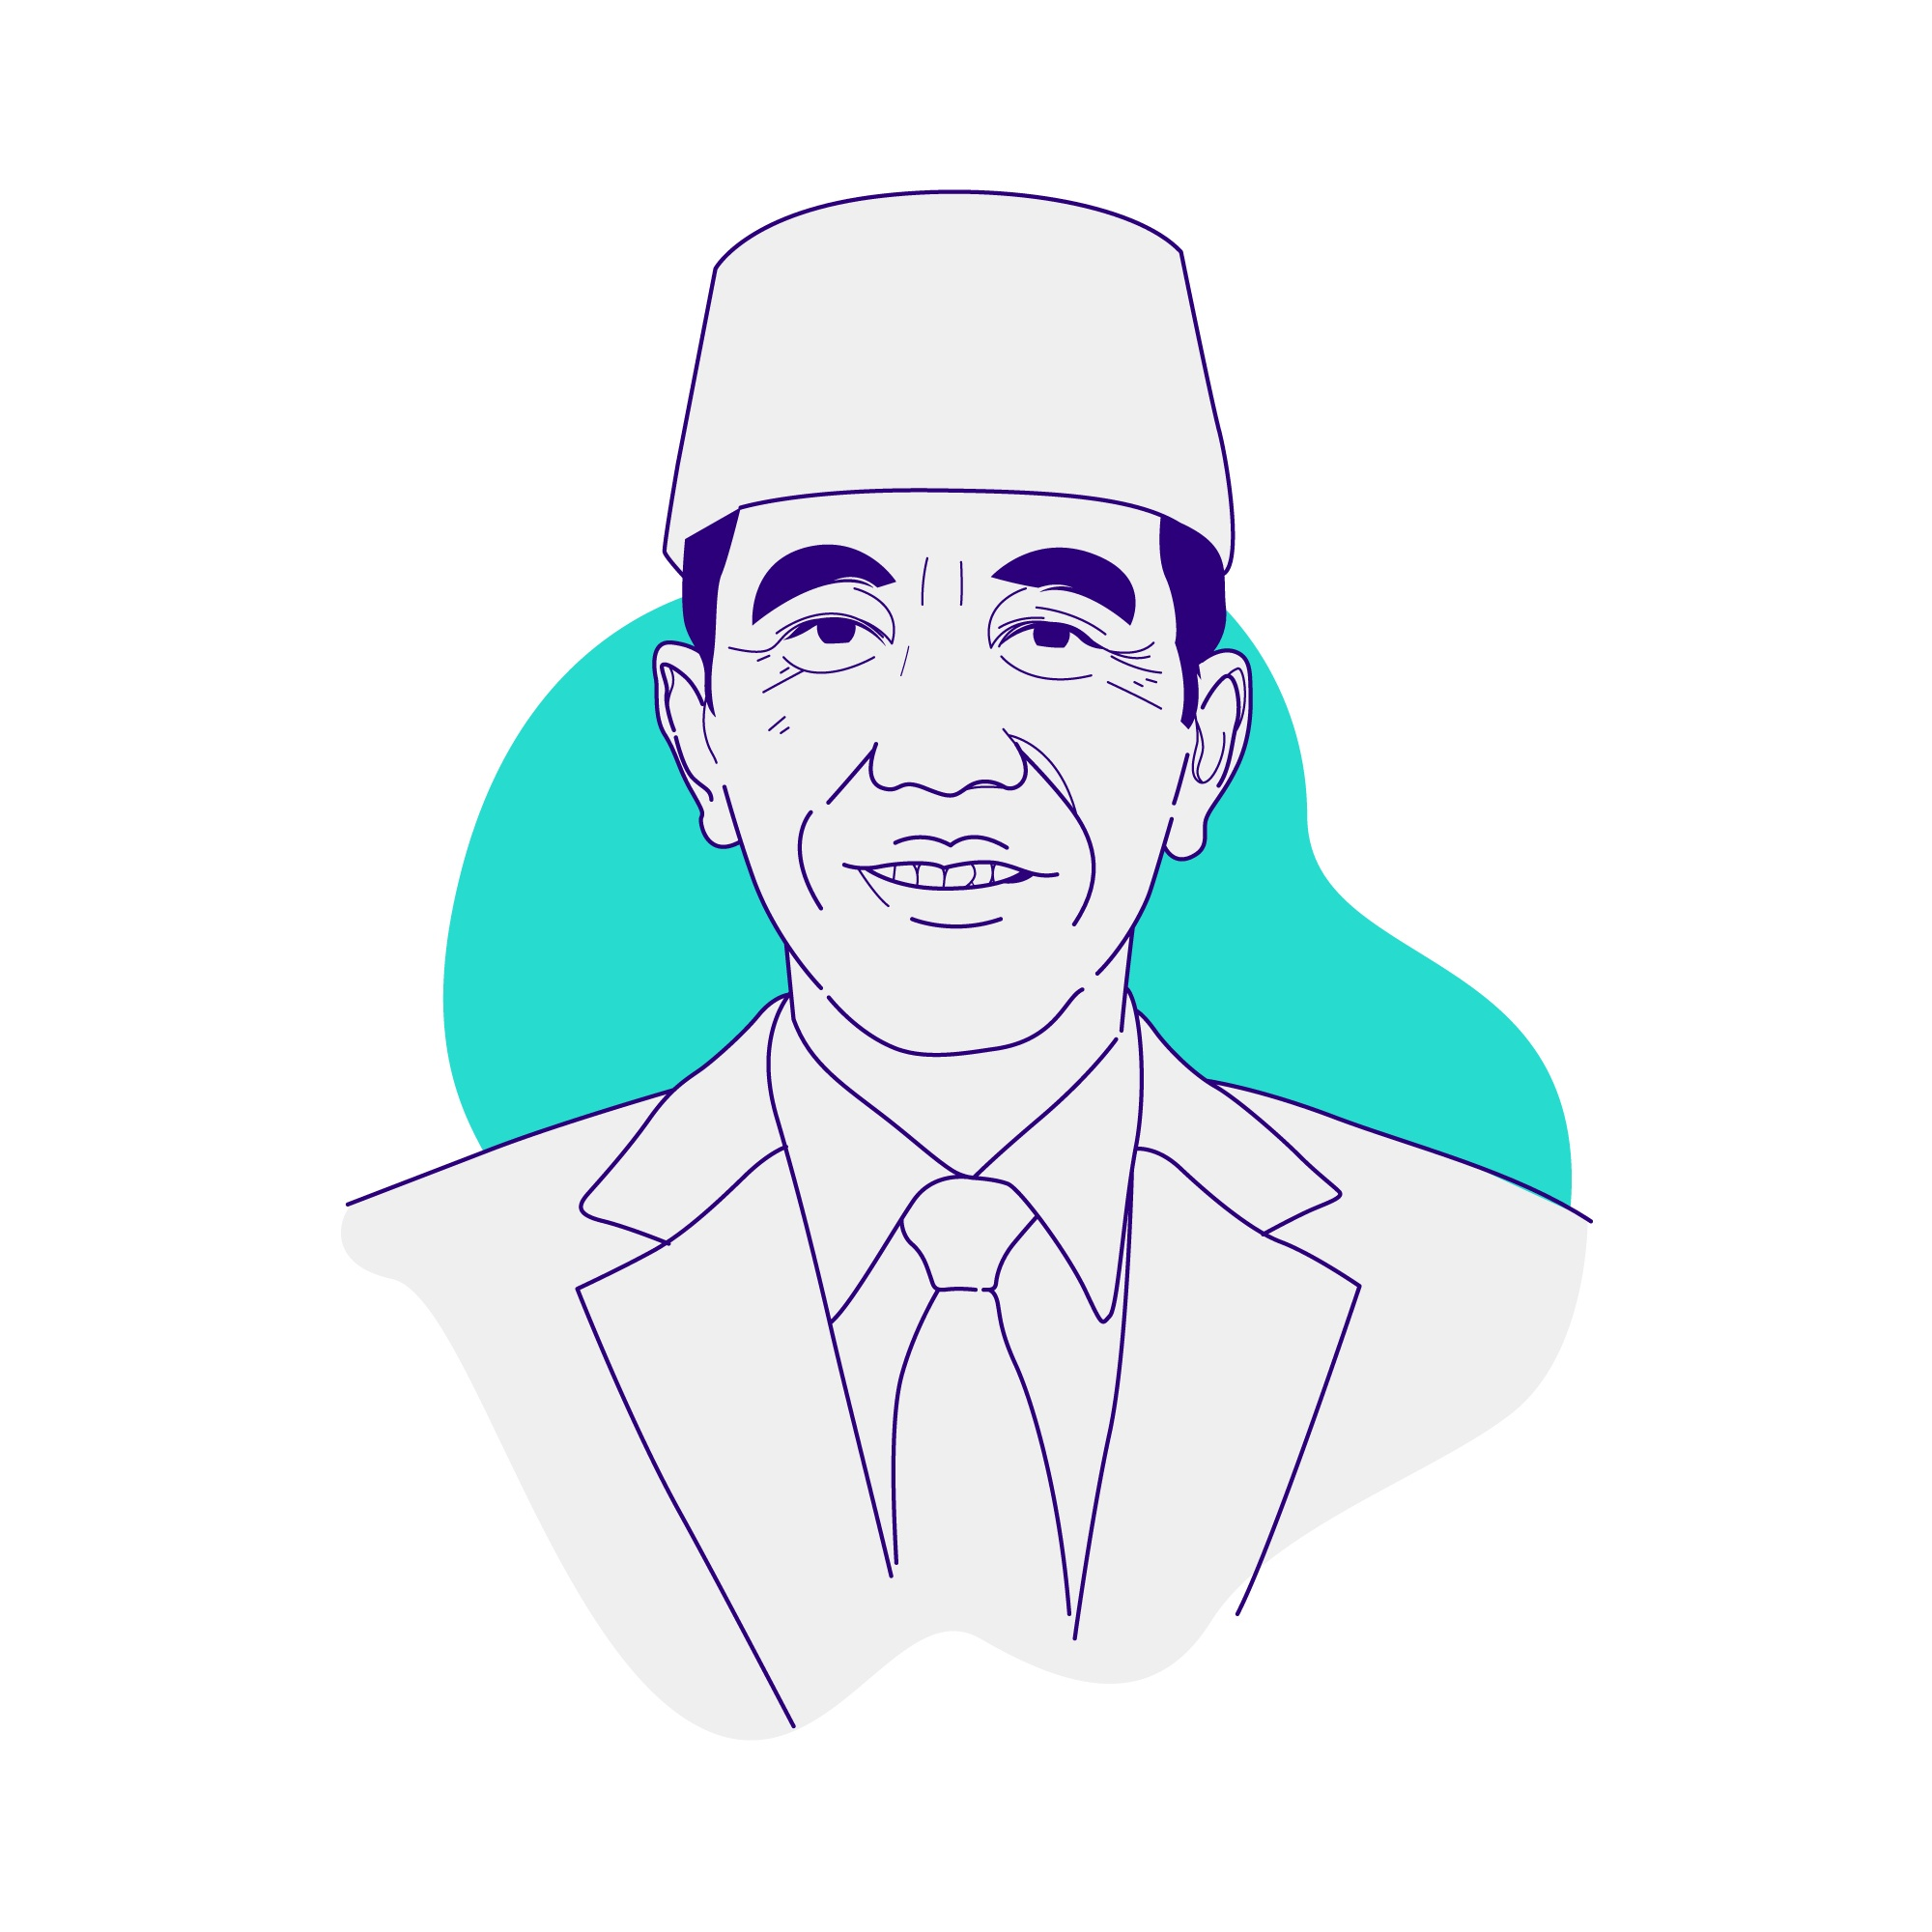 Joko Widodo becomes Indonesia's President for the second time